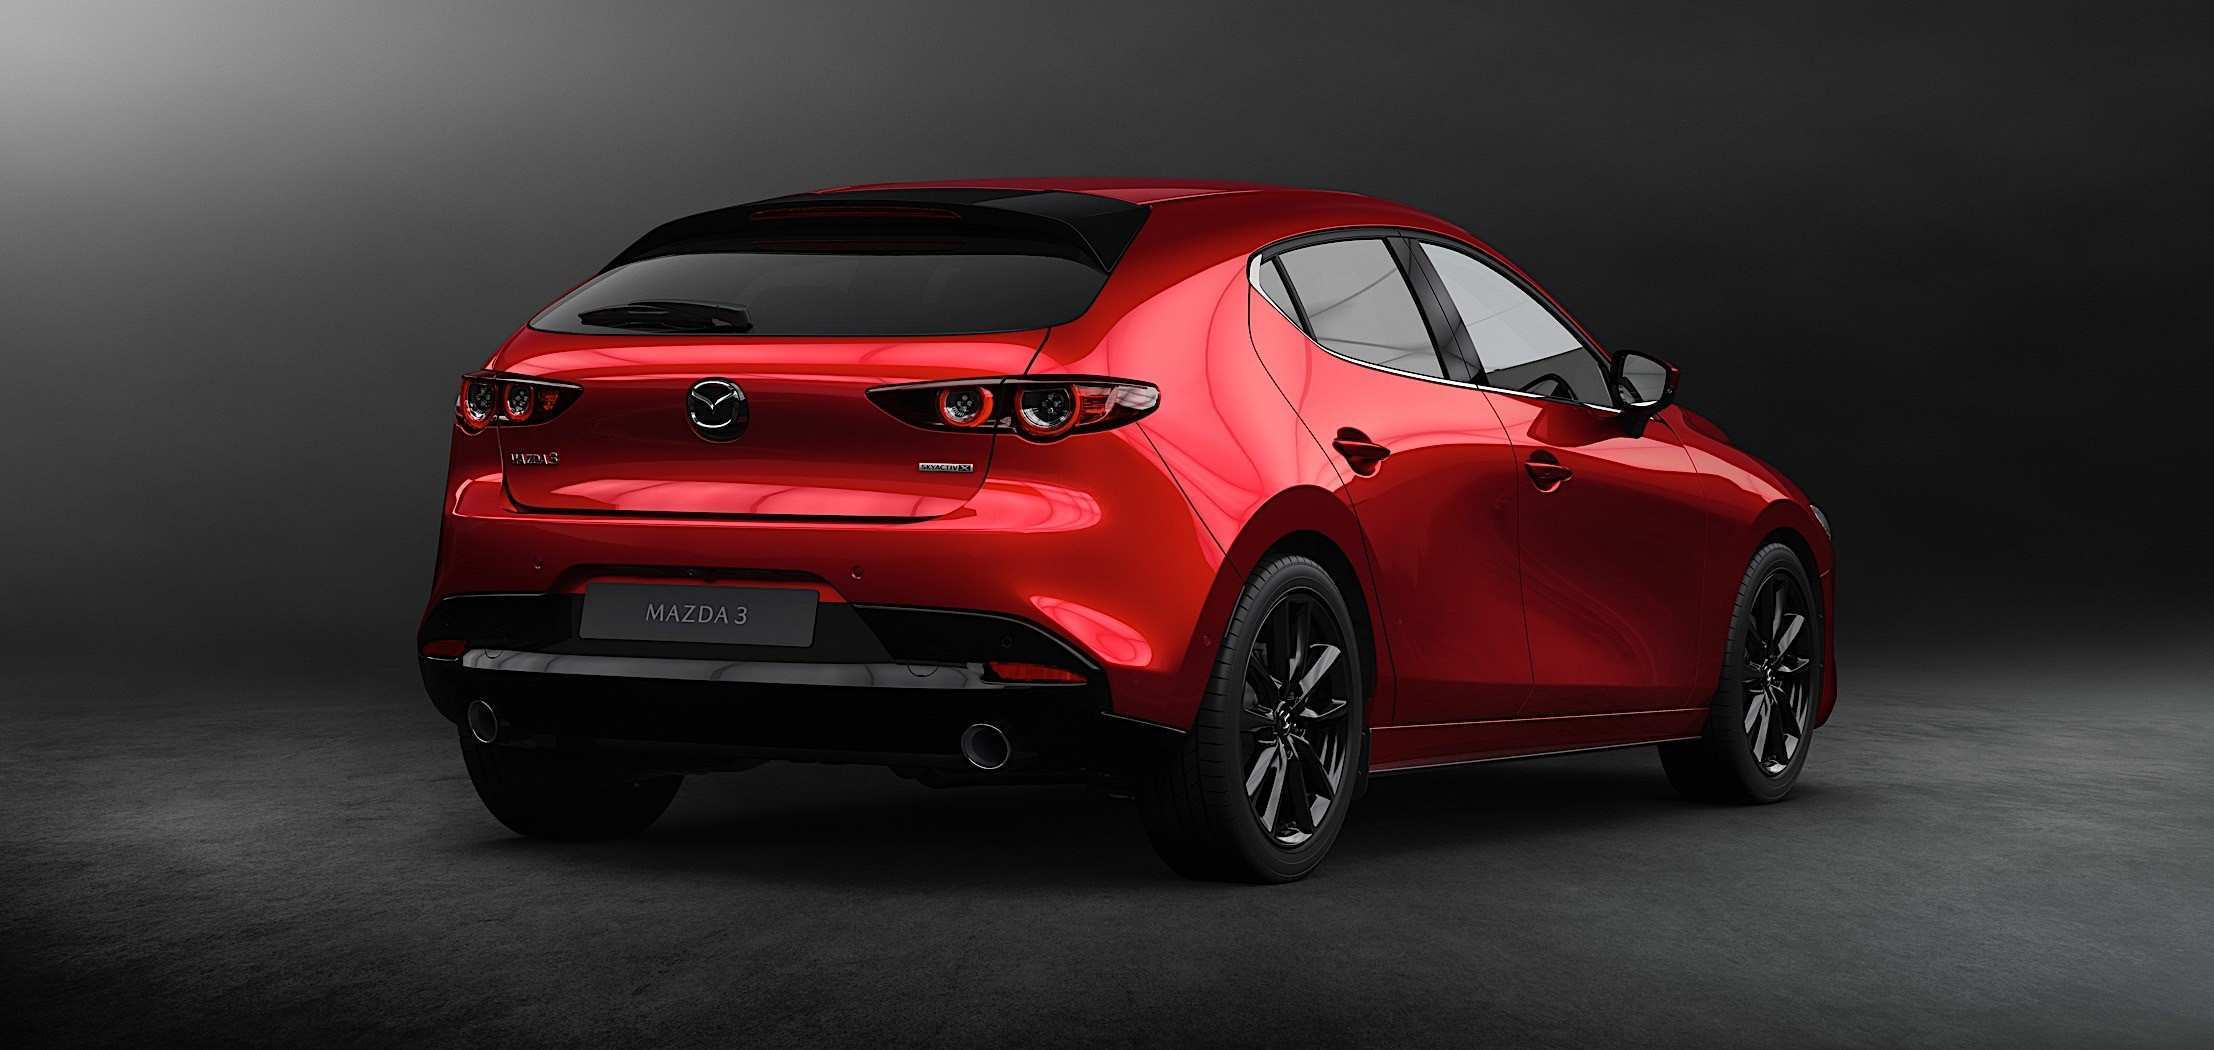 46 Gallery of Mazda 3 2019 Specs Release Date with Mazda 3 2019 Specs